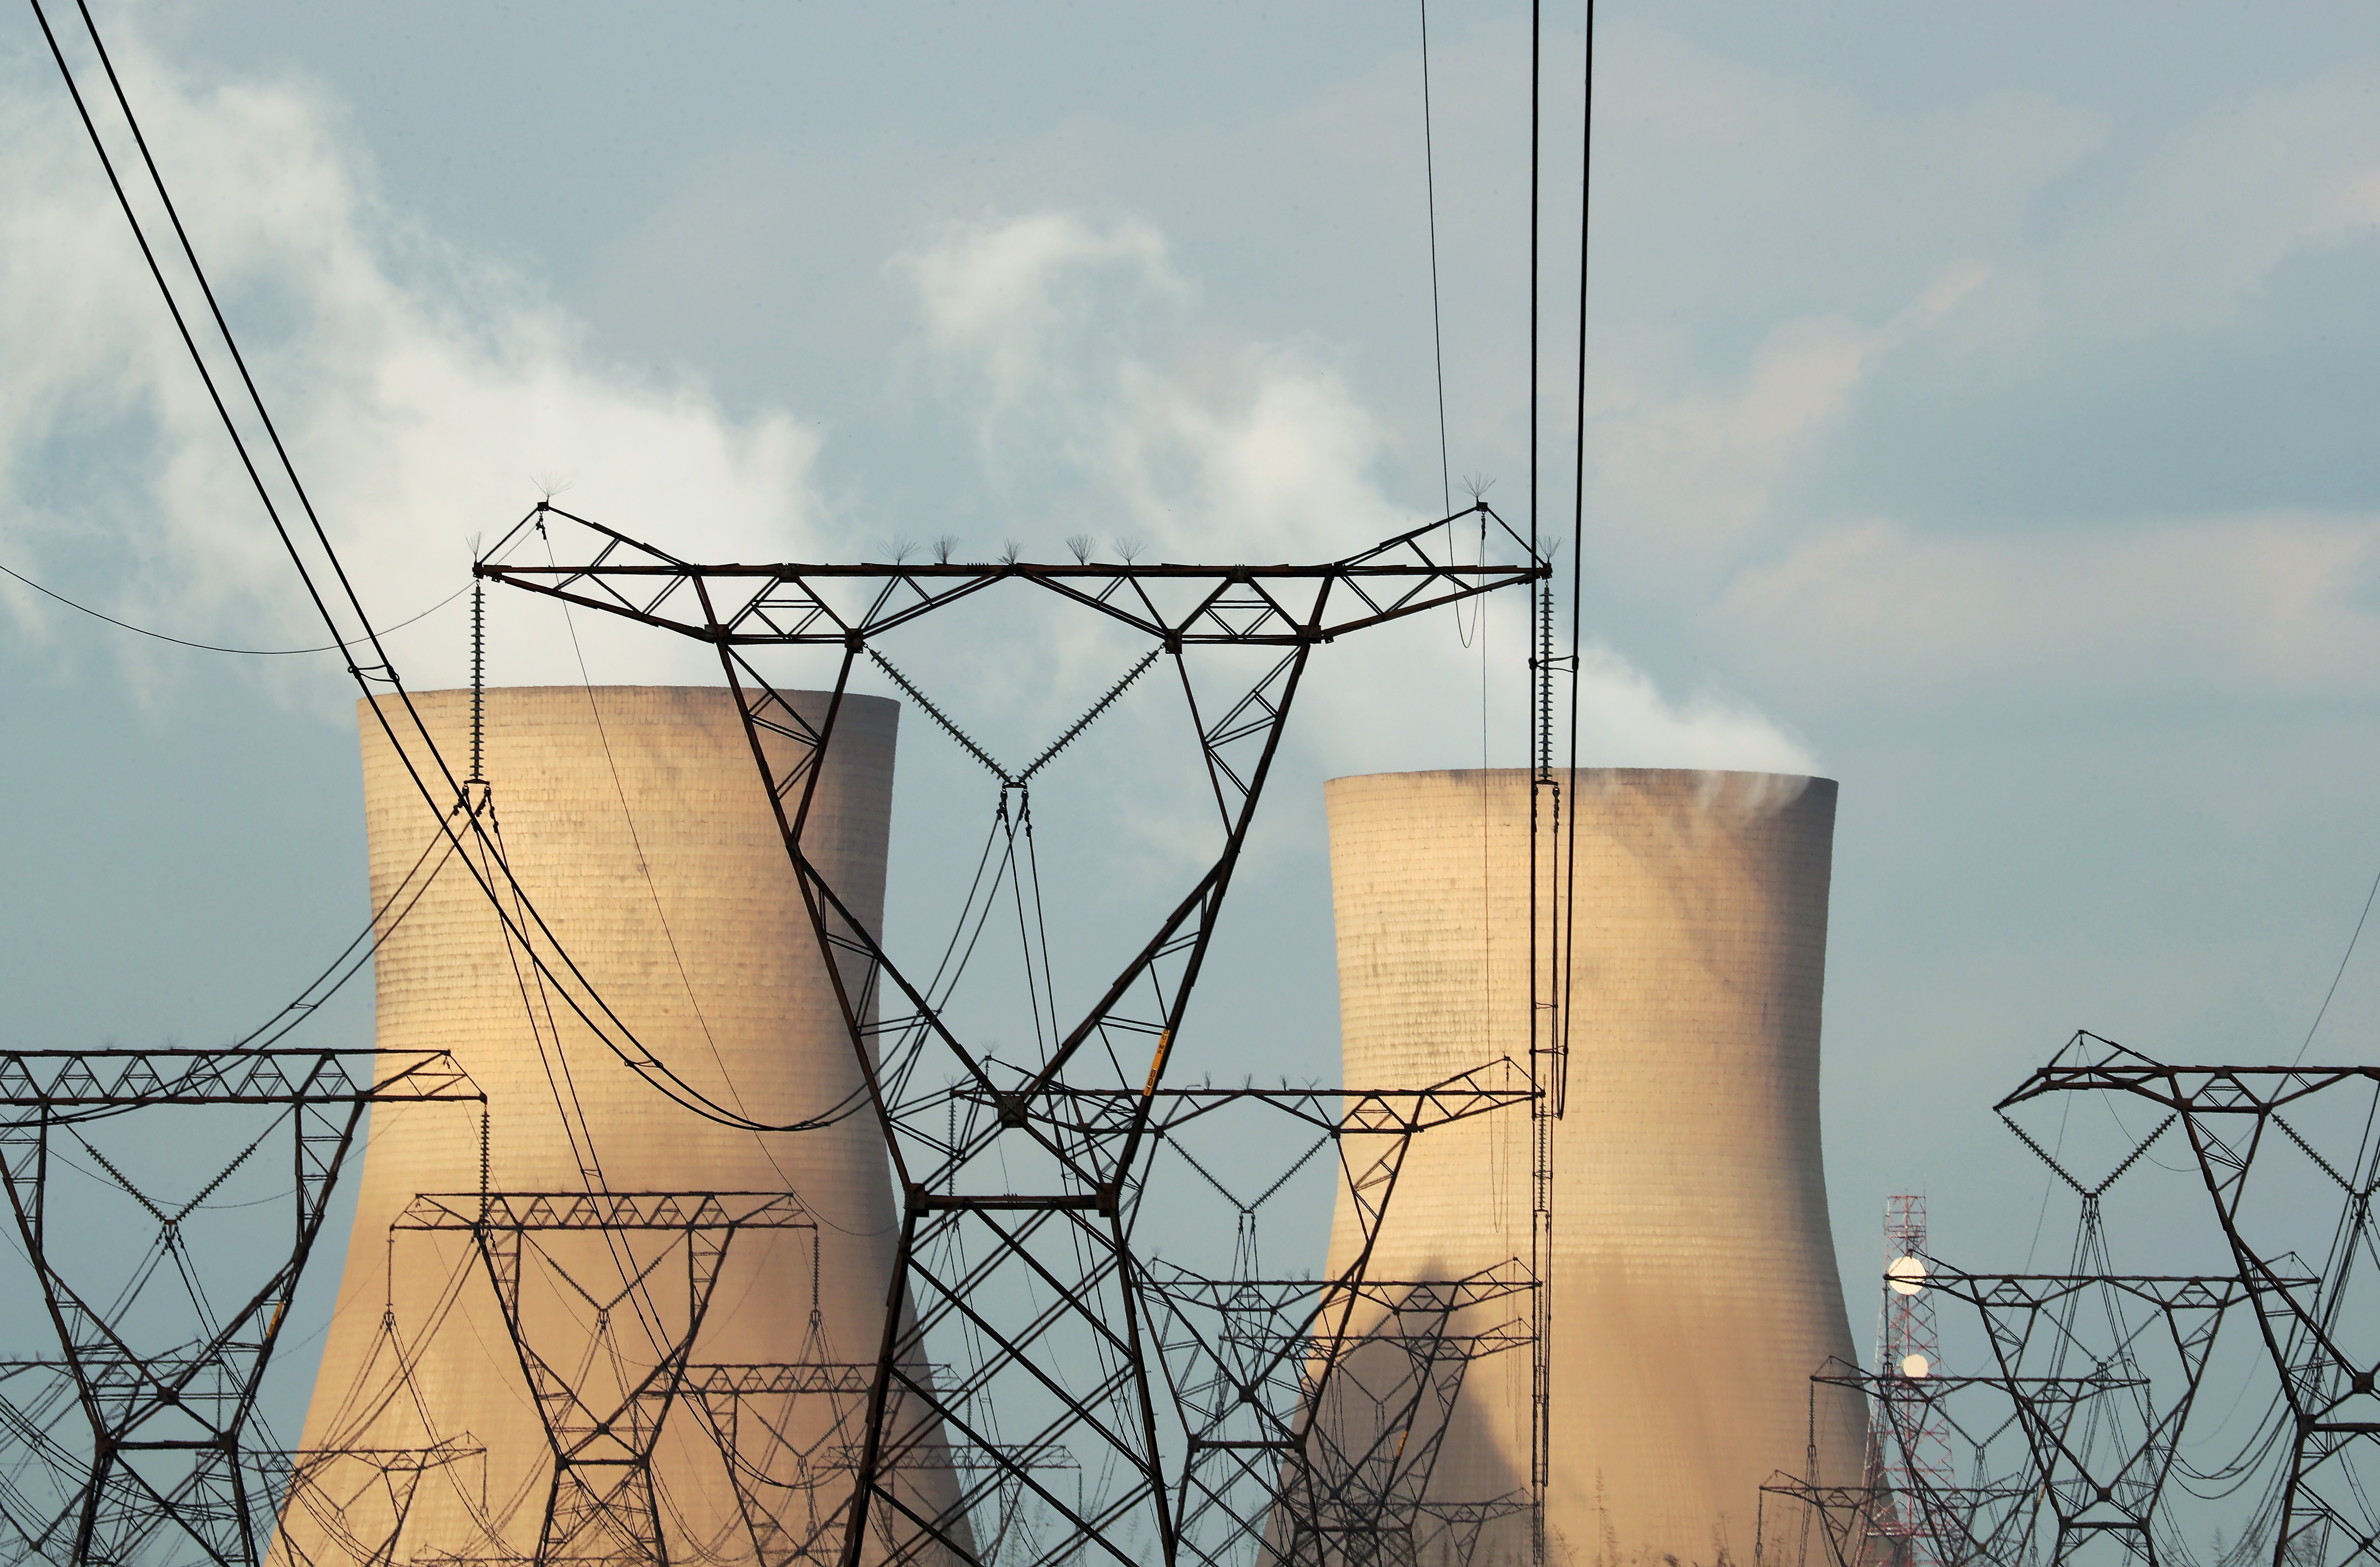 Cooling towers are pictured at a coal-based power station owned by state power utility Eskom in Duhva, South Africa, February 18, 2020. REUTERS/Mike Hutchings/File Photo